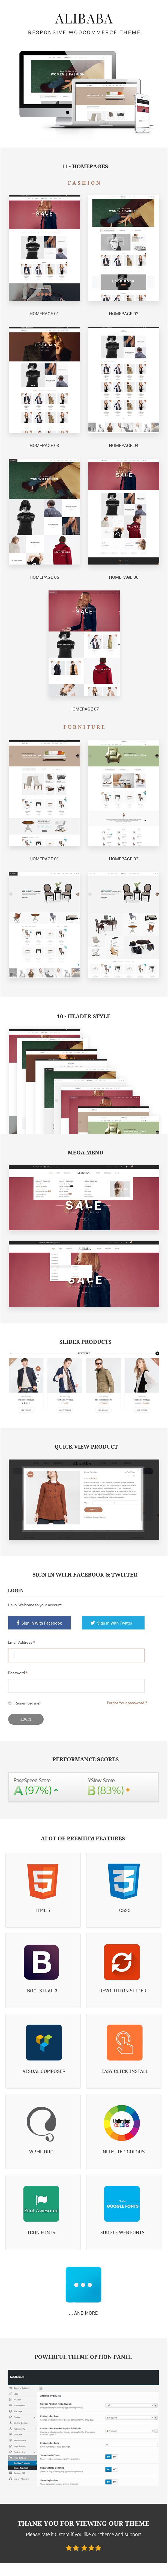 Shopping and Furniture WooCommerce WordPress Theme